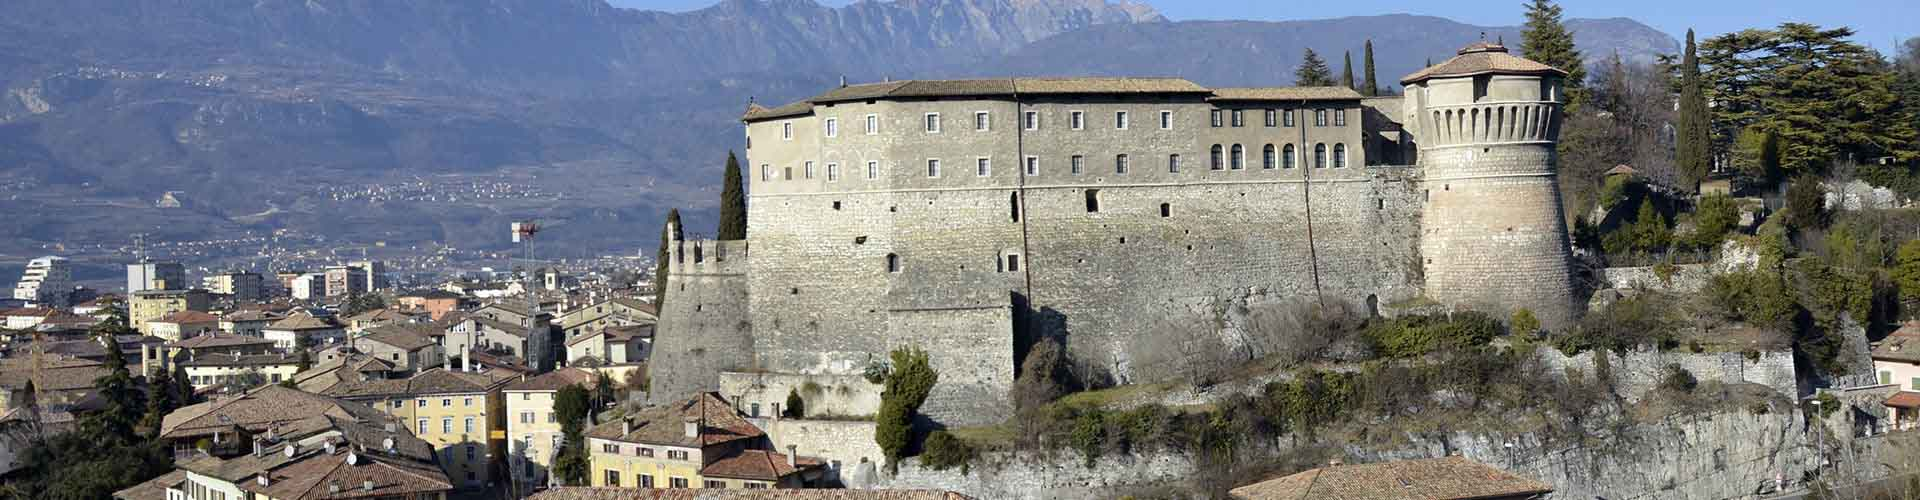 Rovereto – Hostels in Rovereto. Maps for Rovereto, Photos and Reviews for each hostel in Rovereto.